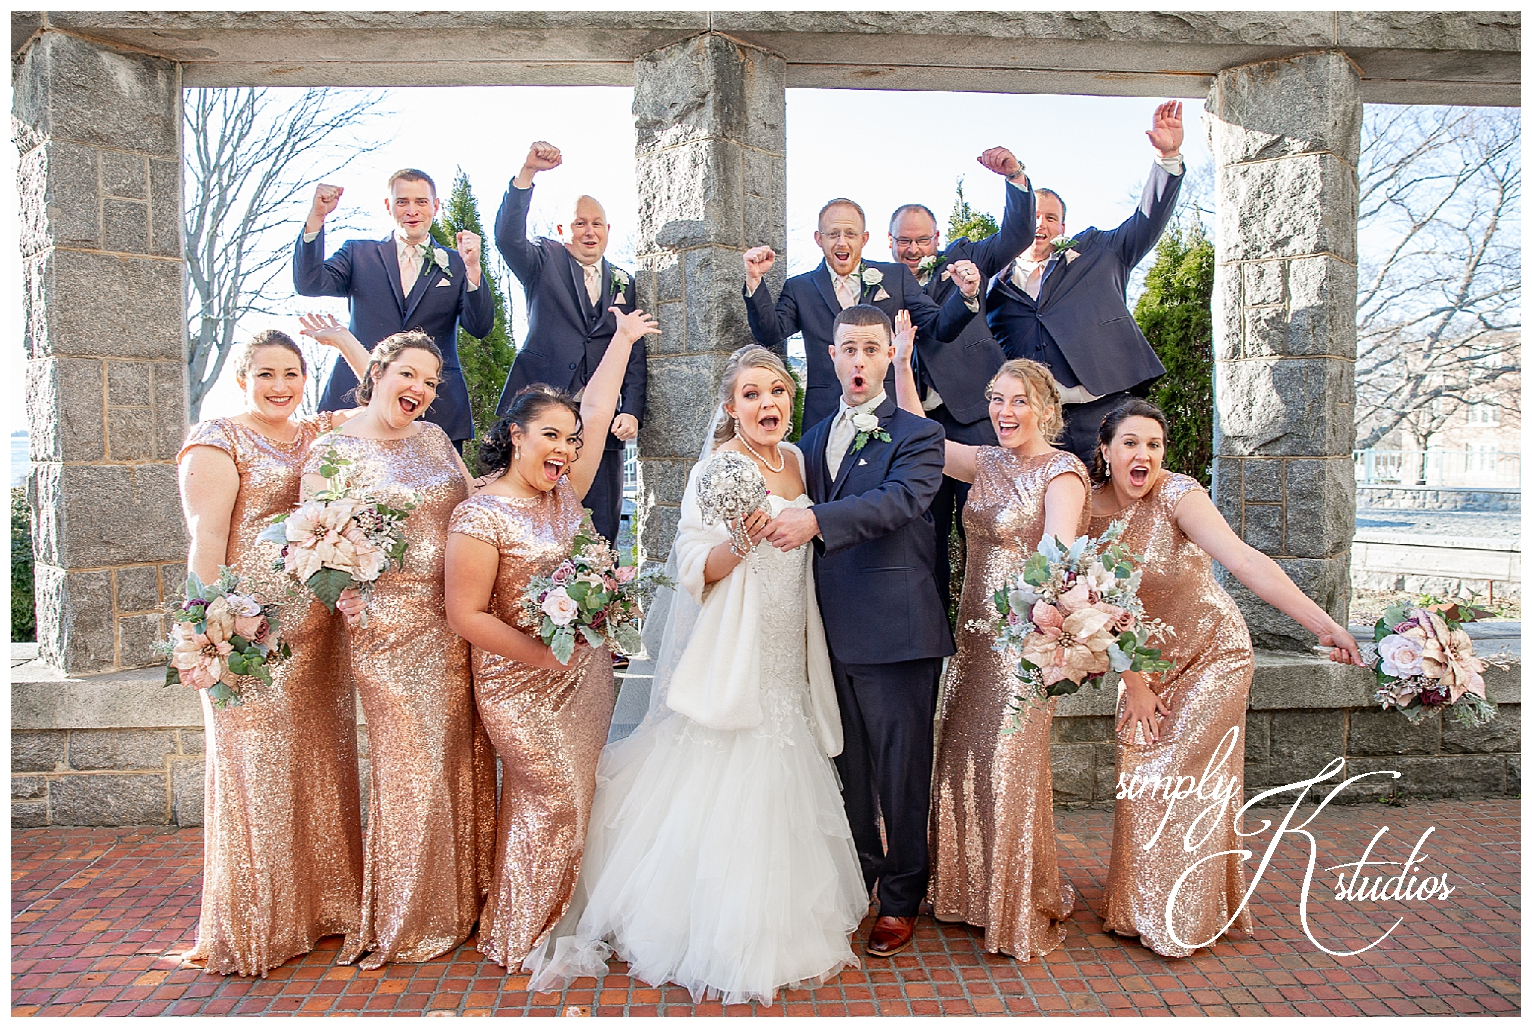 30 Winter Wedding Photos in CT.jpg